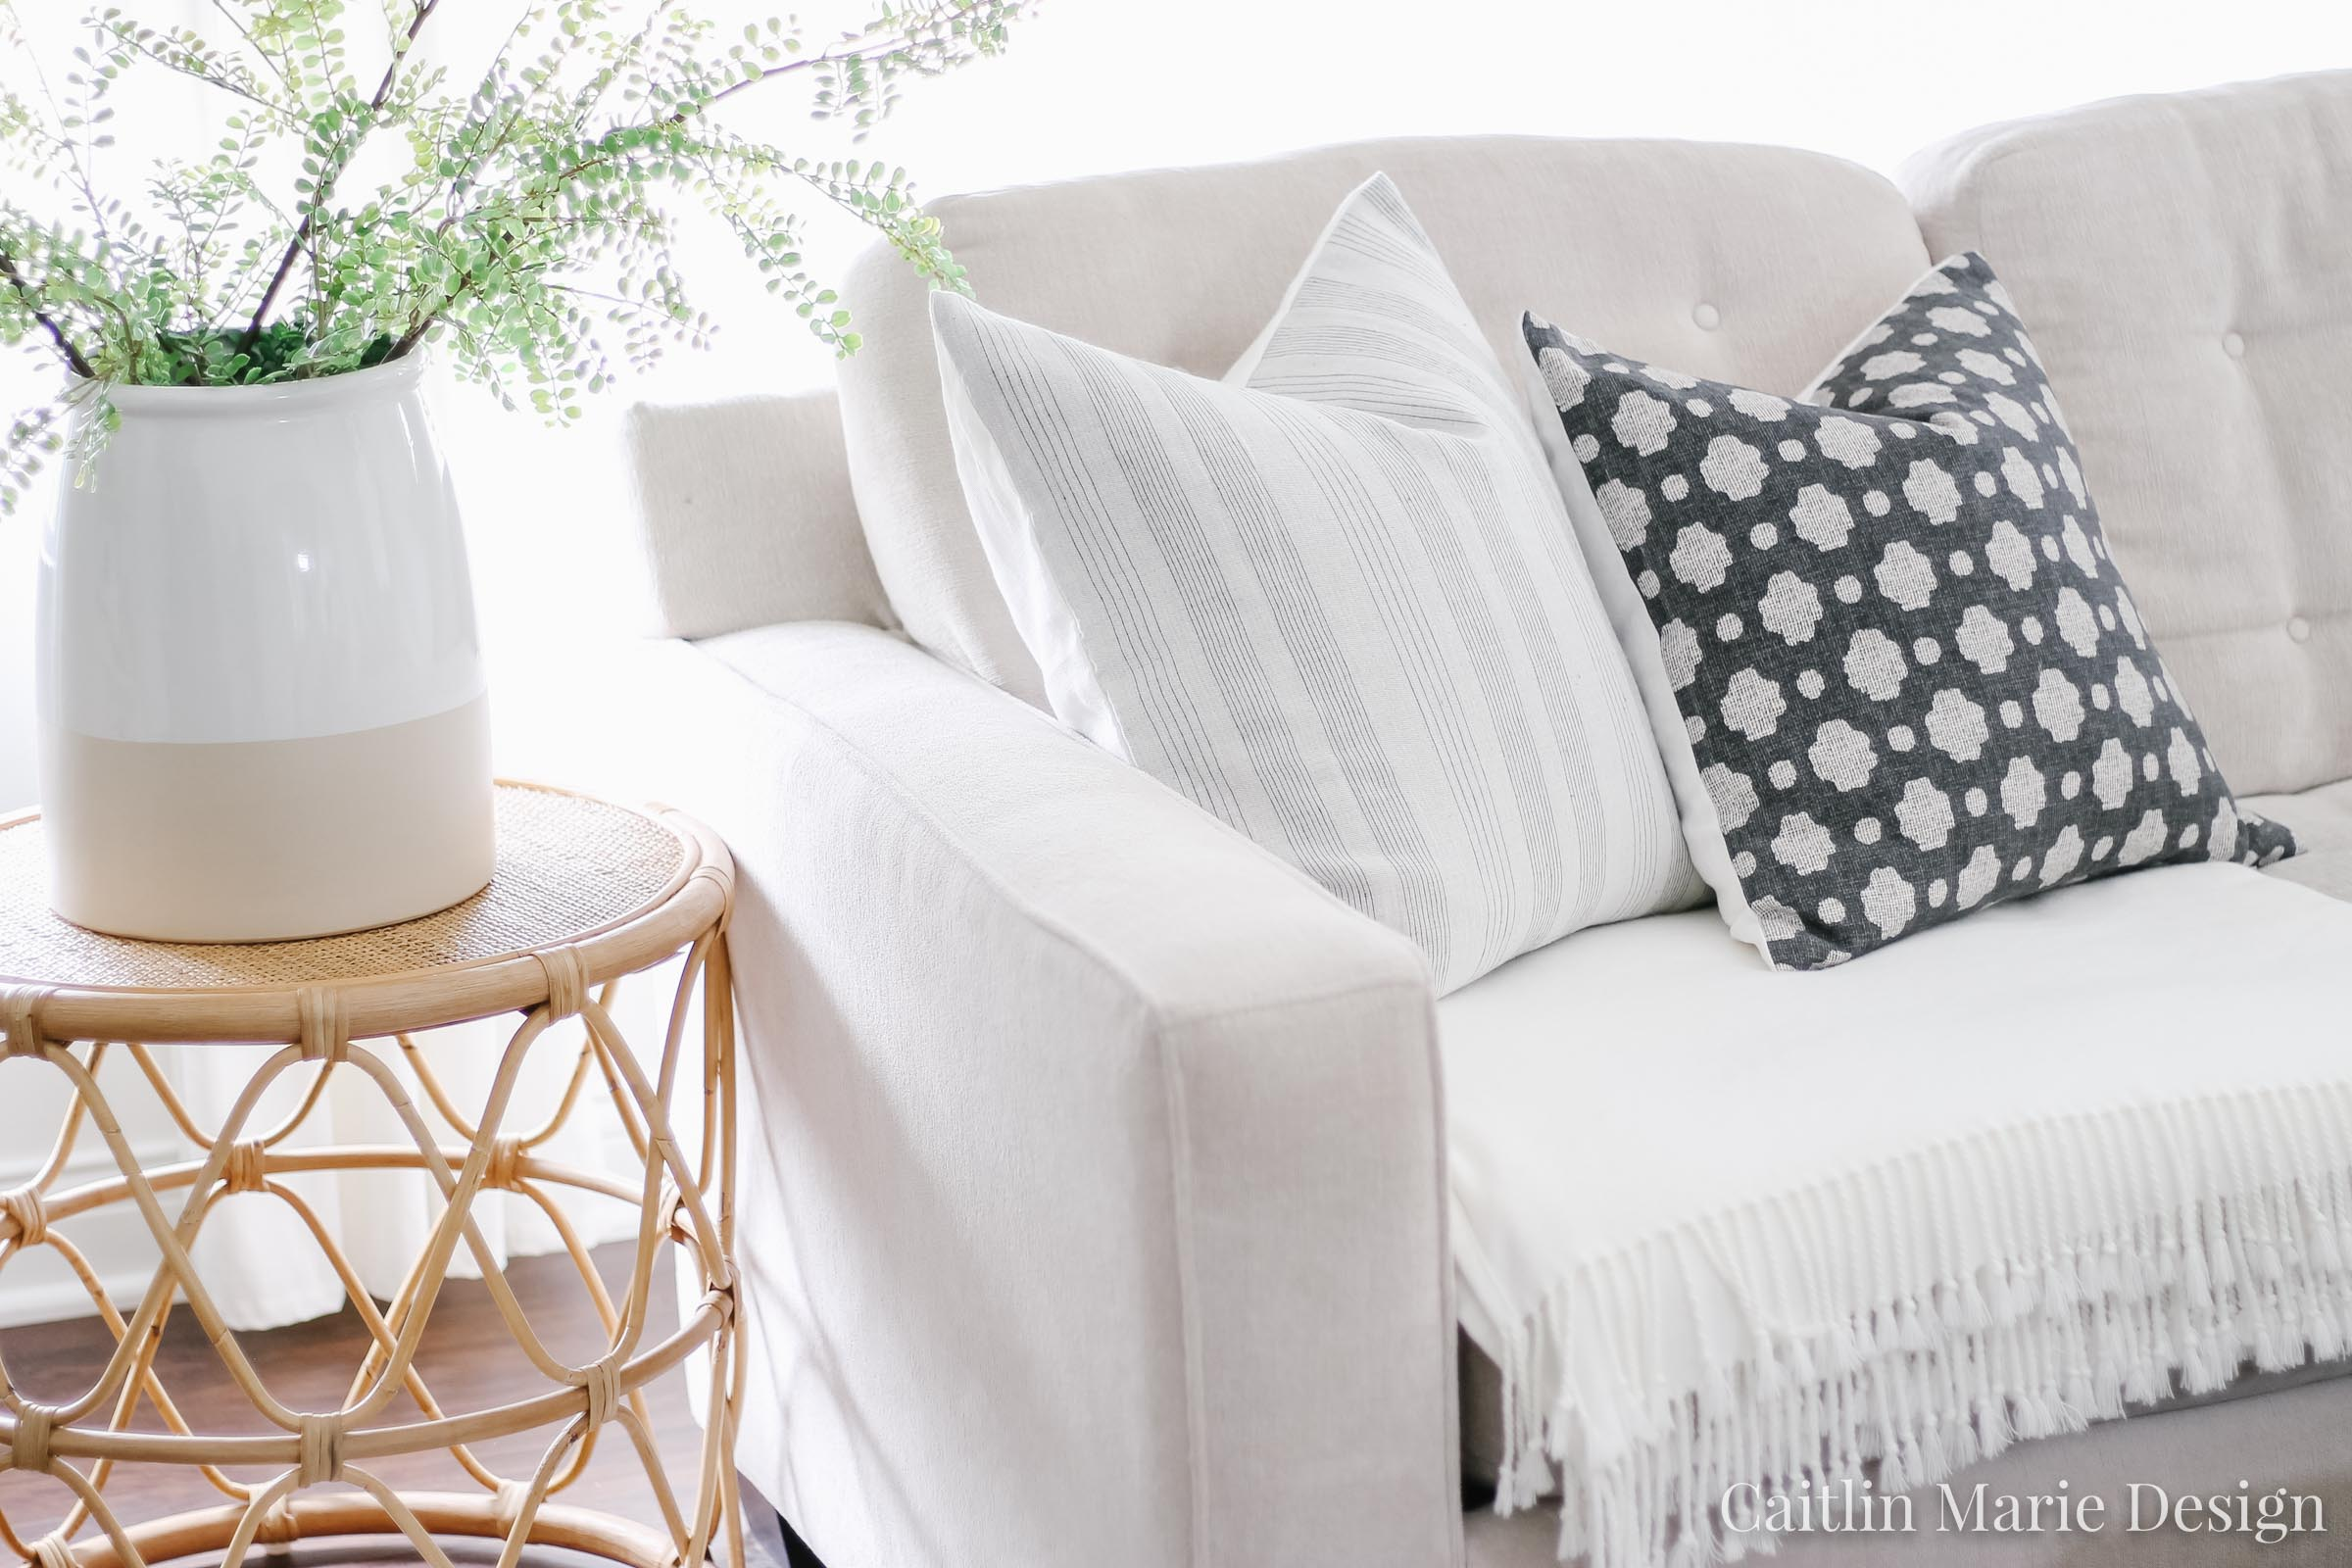 Summer Home Tour 2019 | coastal living room, modern traditional, large dipped vase, pillow covers, woven wood shades